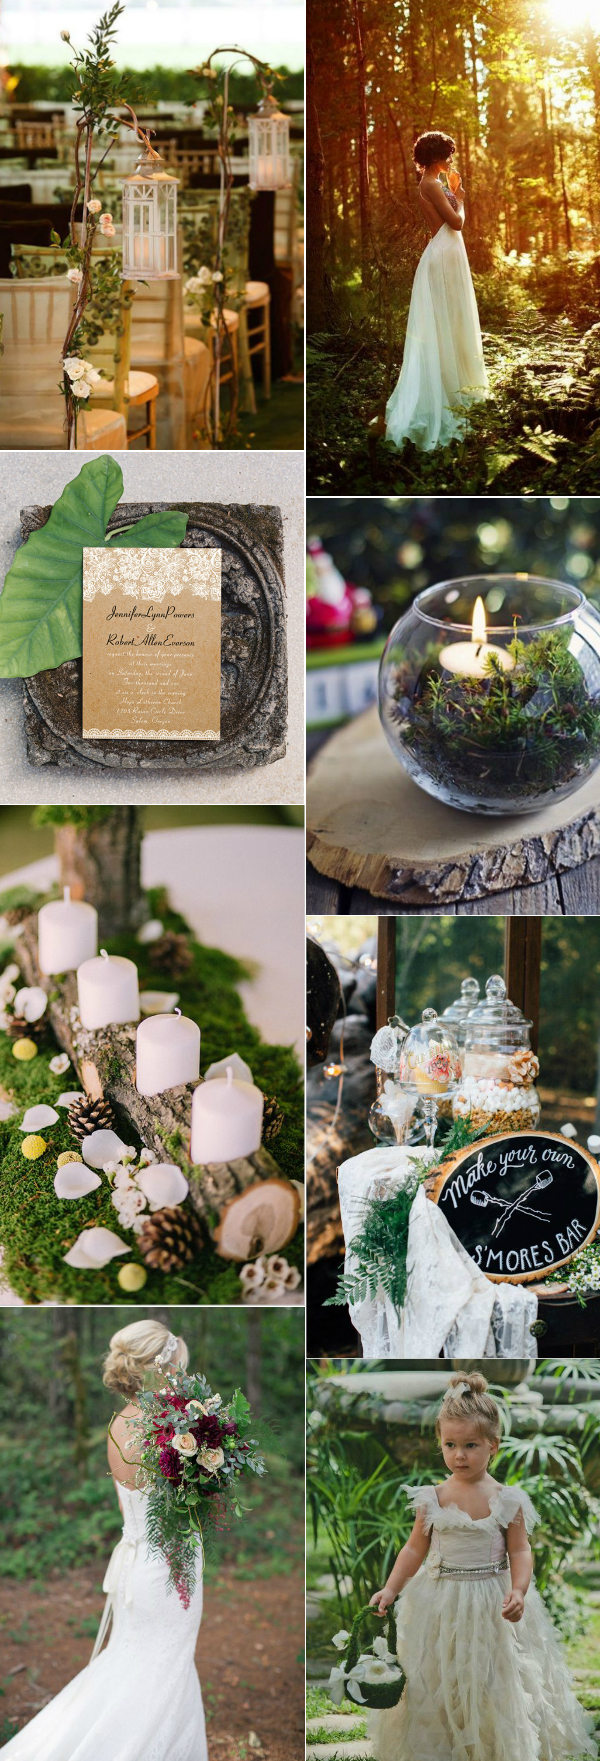 dreamy-and-enchanted-woodland-inspired-wedding-ideas